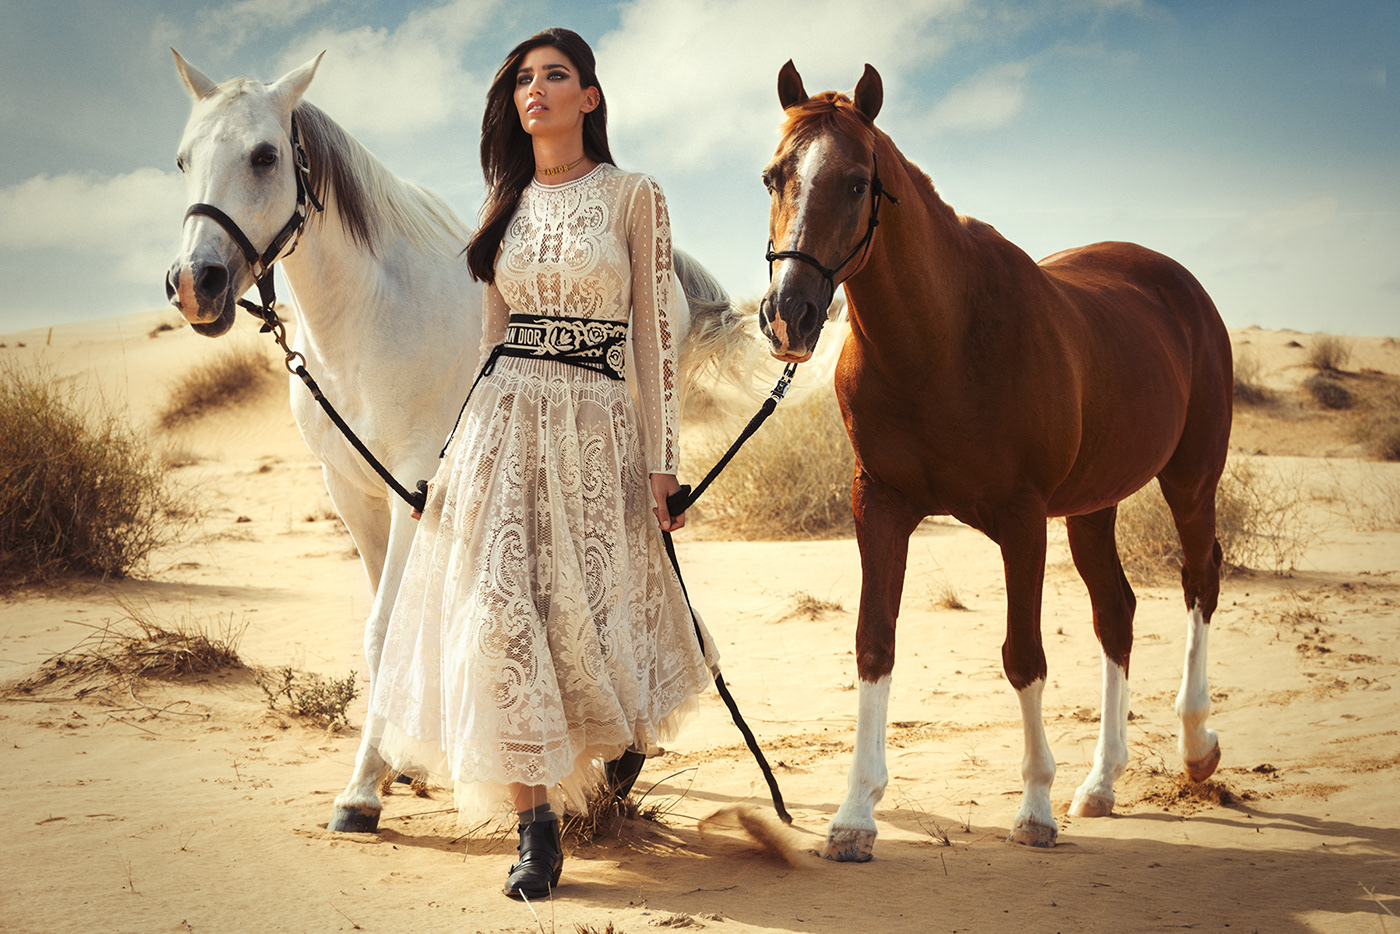 photographer,dubai,model,magazine,styling ,Adobe Photoshop,Nikon,editorial,Dior,horse